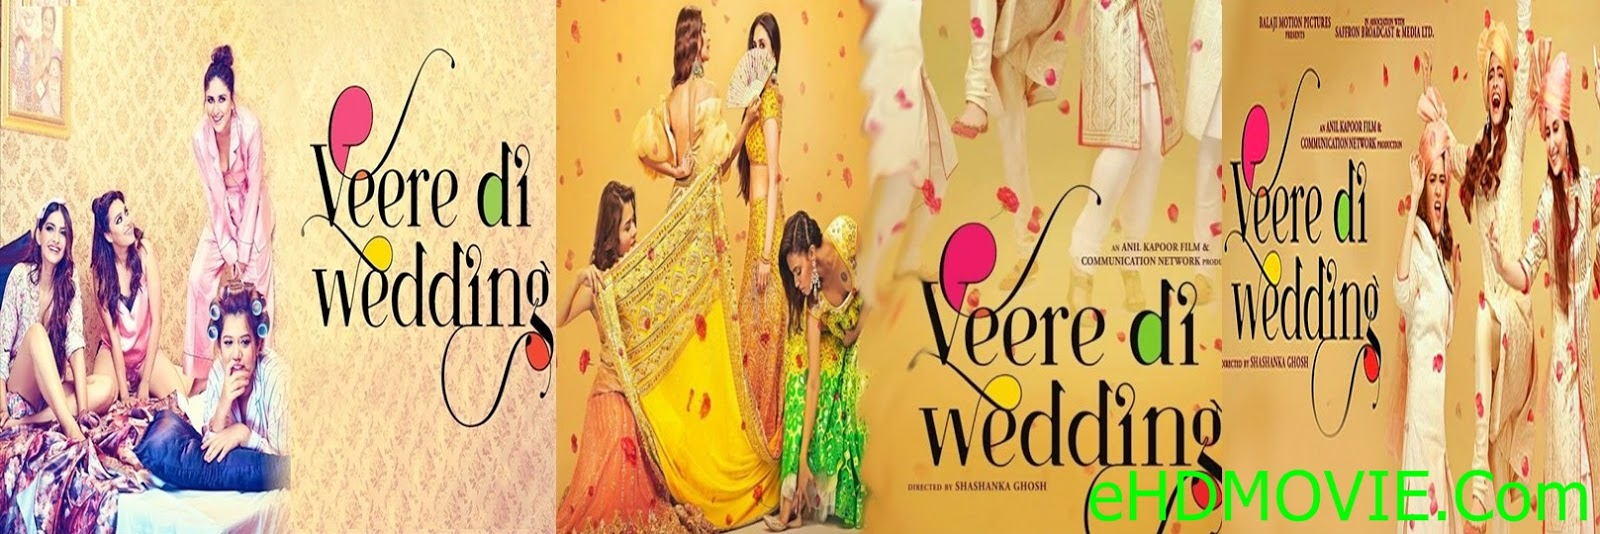 Veere Di Wedding 2018 Full Movie Hindi 1080p - 720p - HEVC - 480p ORG WEB-DL 300MB - 500MB - 1GB - 2.5GB ESubs Free Download